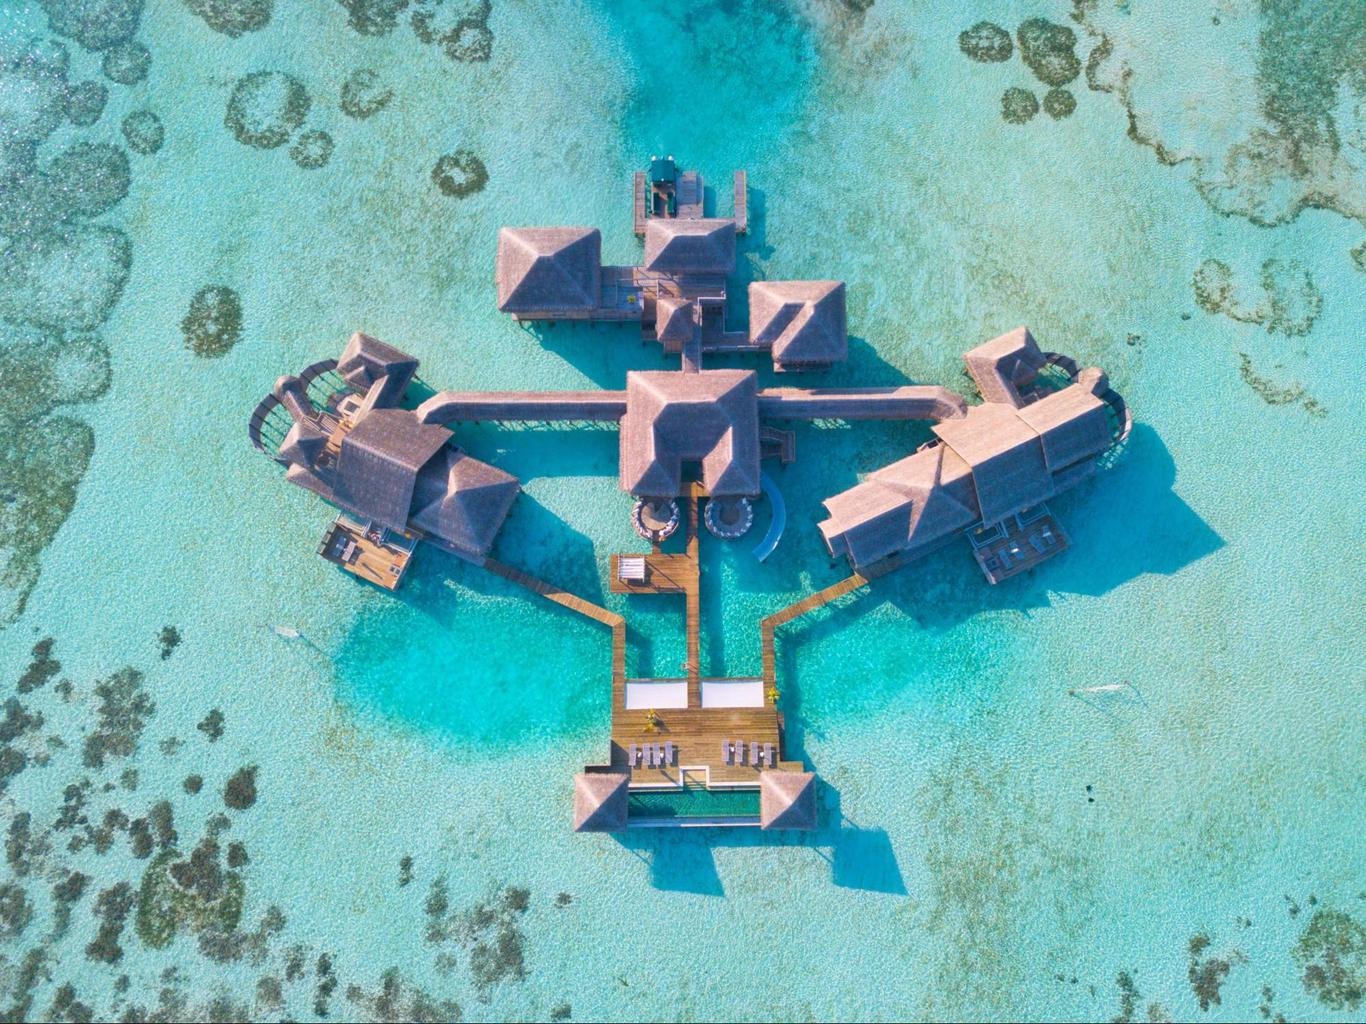 Private Reserve at Gili Lankanfushi drone shot